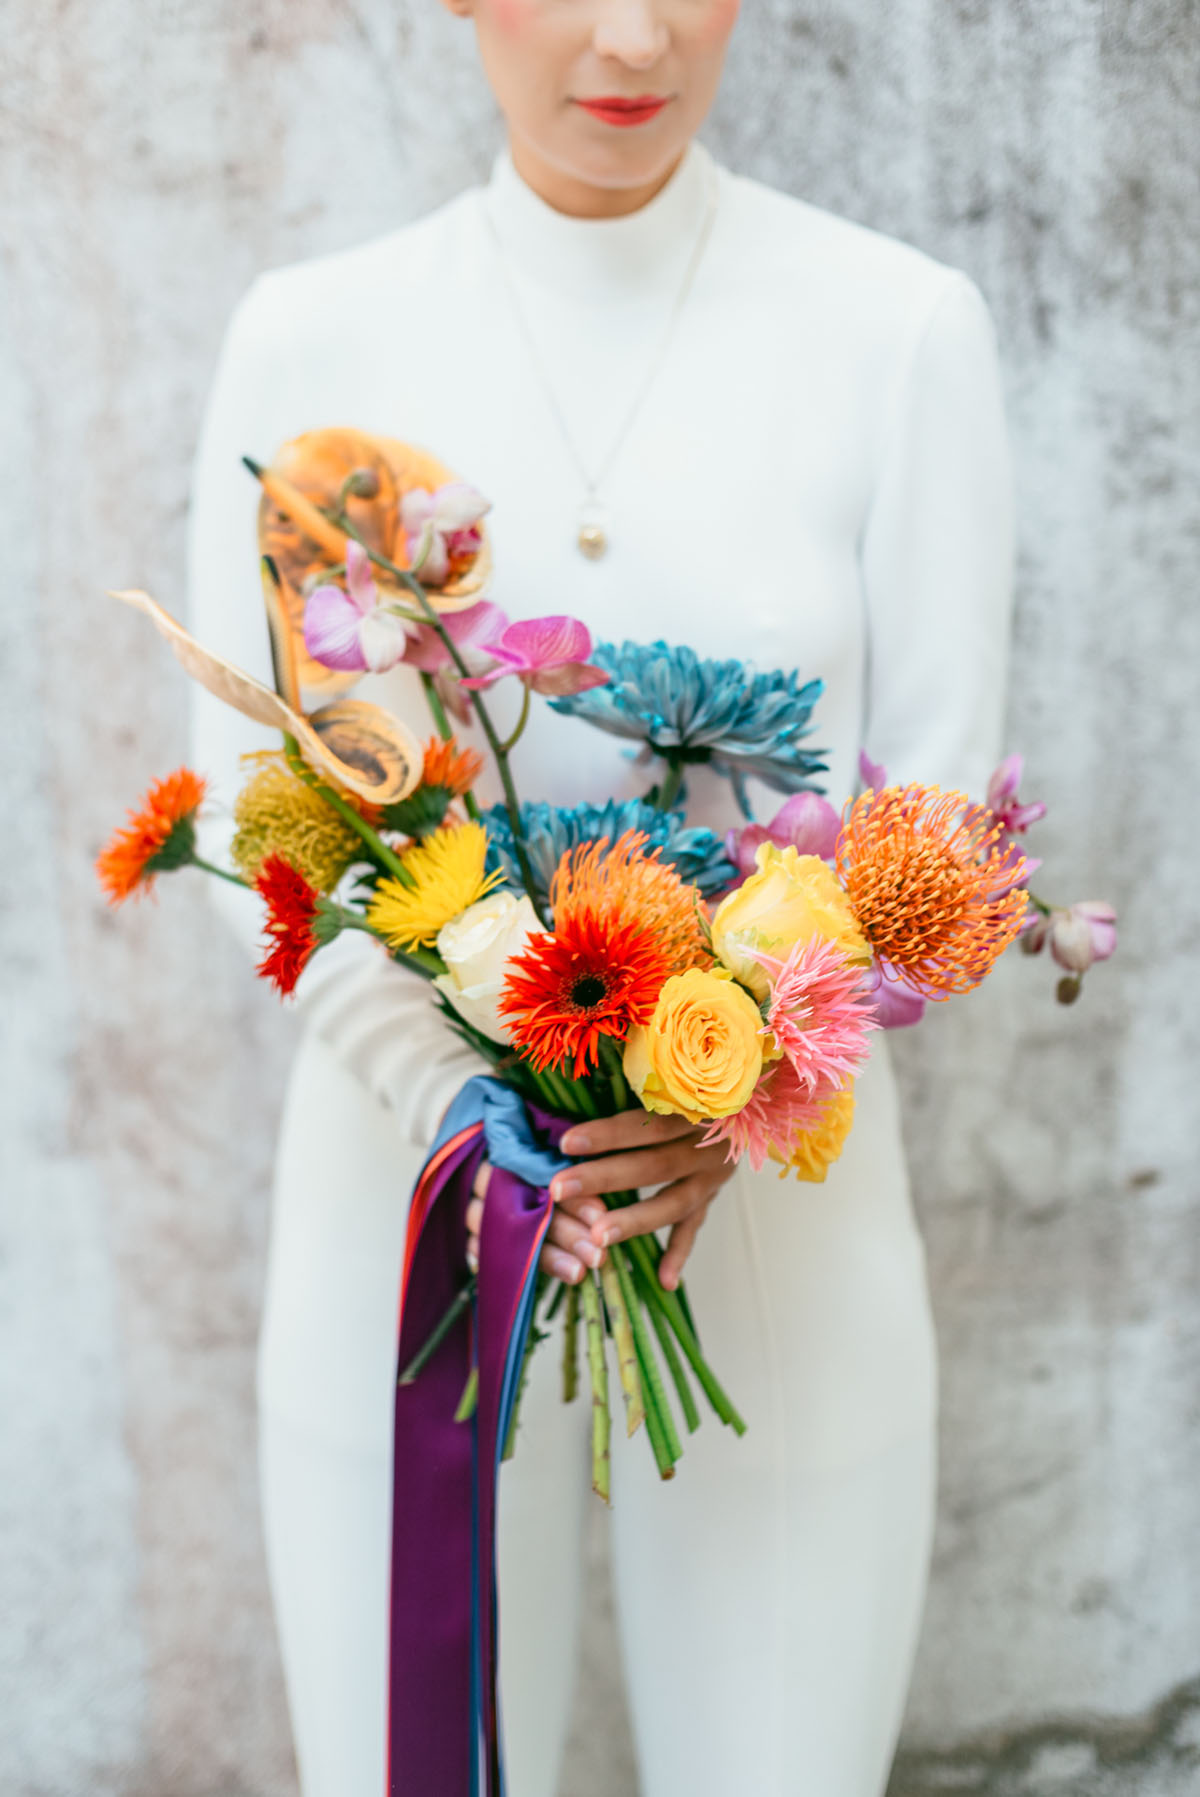 Her wedding bouquet was extra colorful, with blooms of all the colors of the rainbow